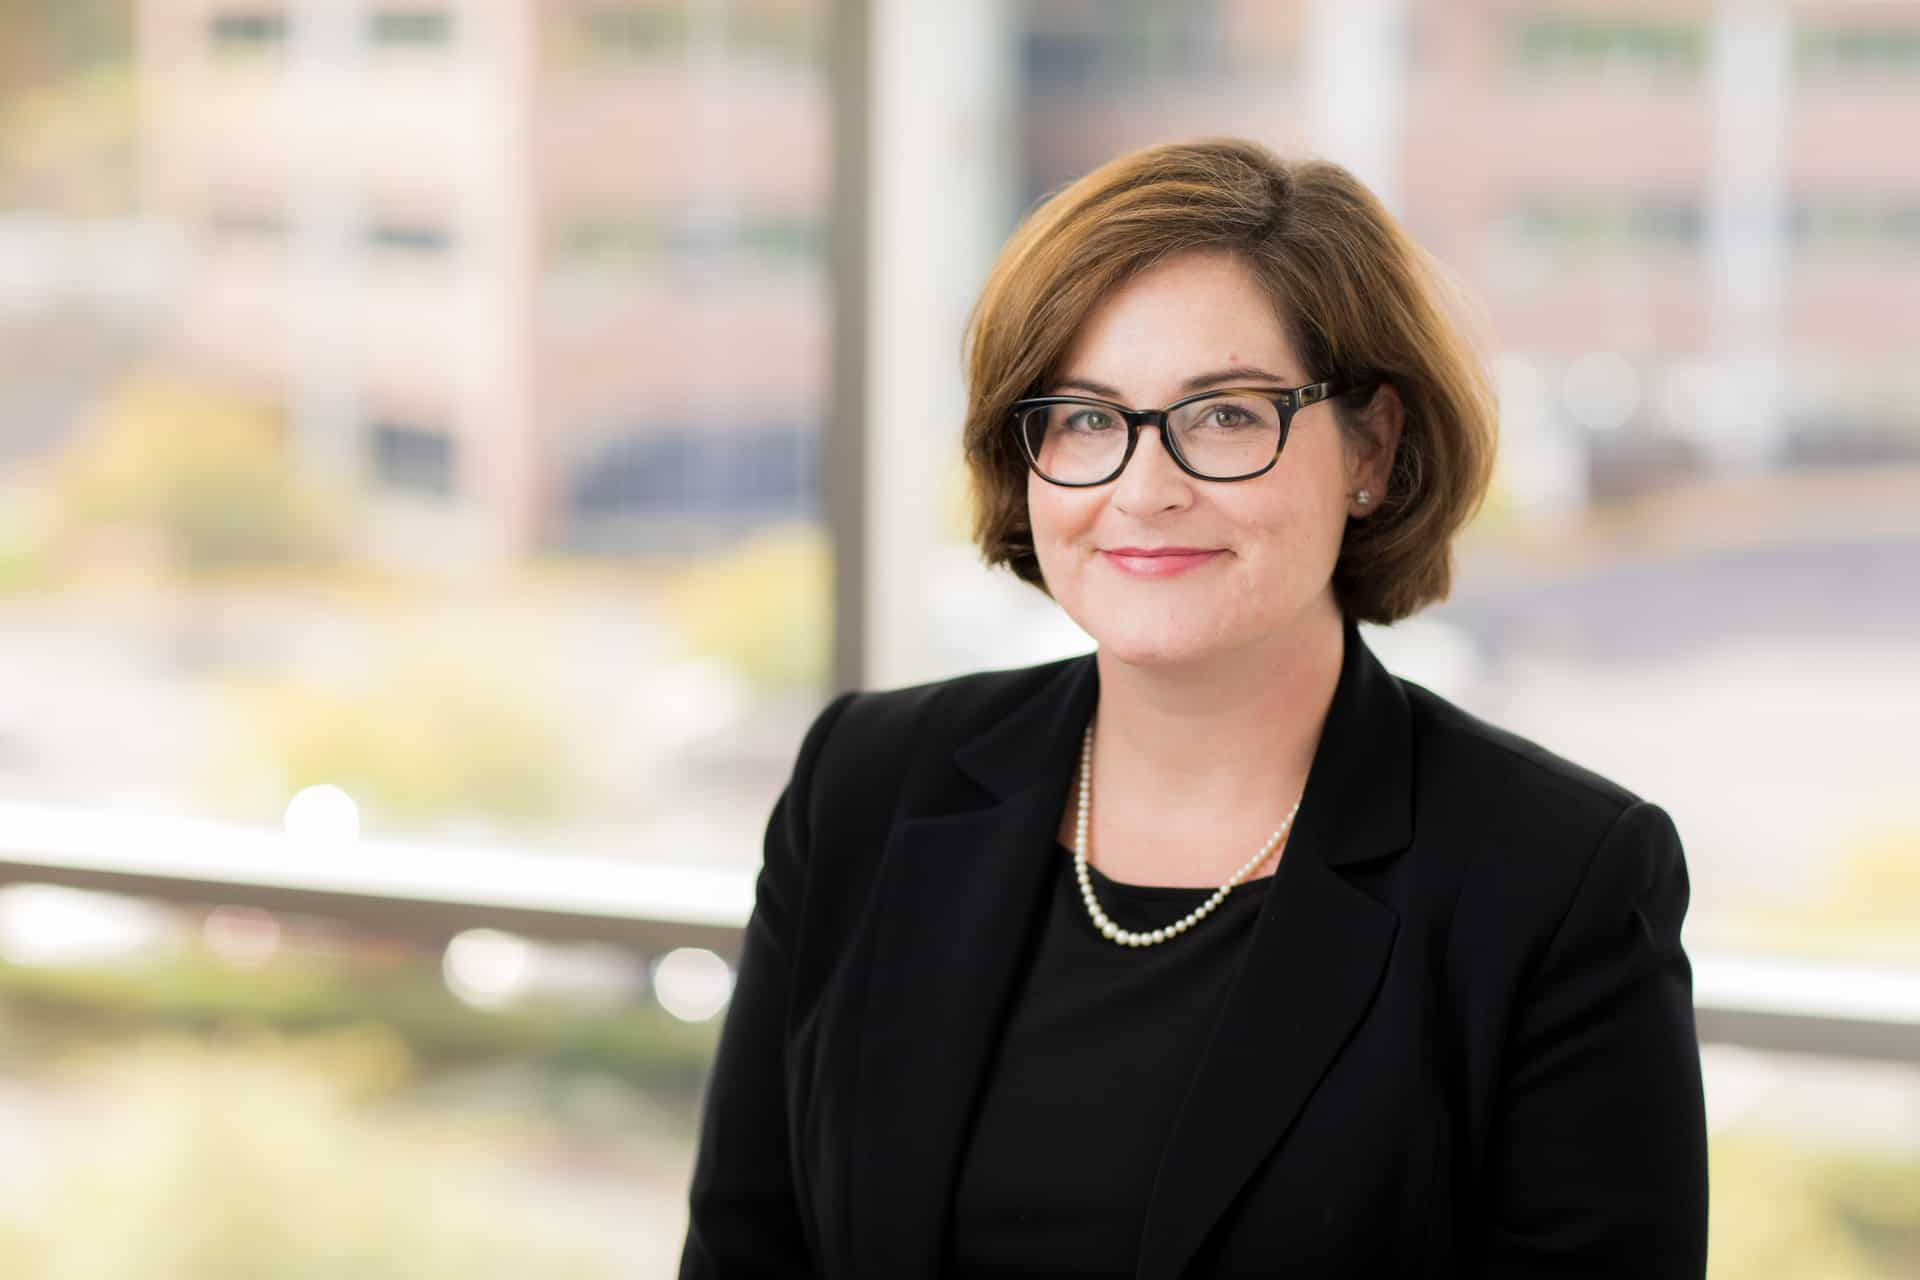 Partner, Julie M. Murphy Selected to Serve on Board of South Jersey Chamber of Commerce